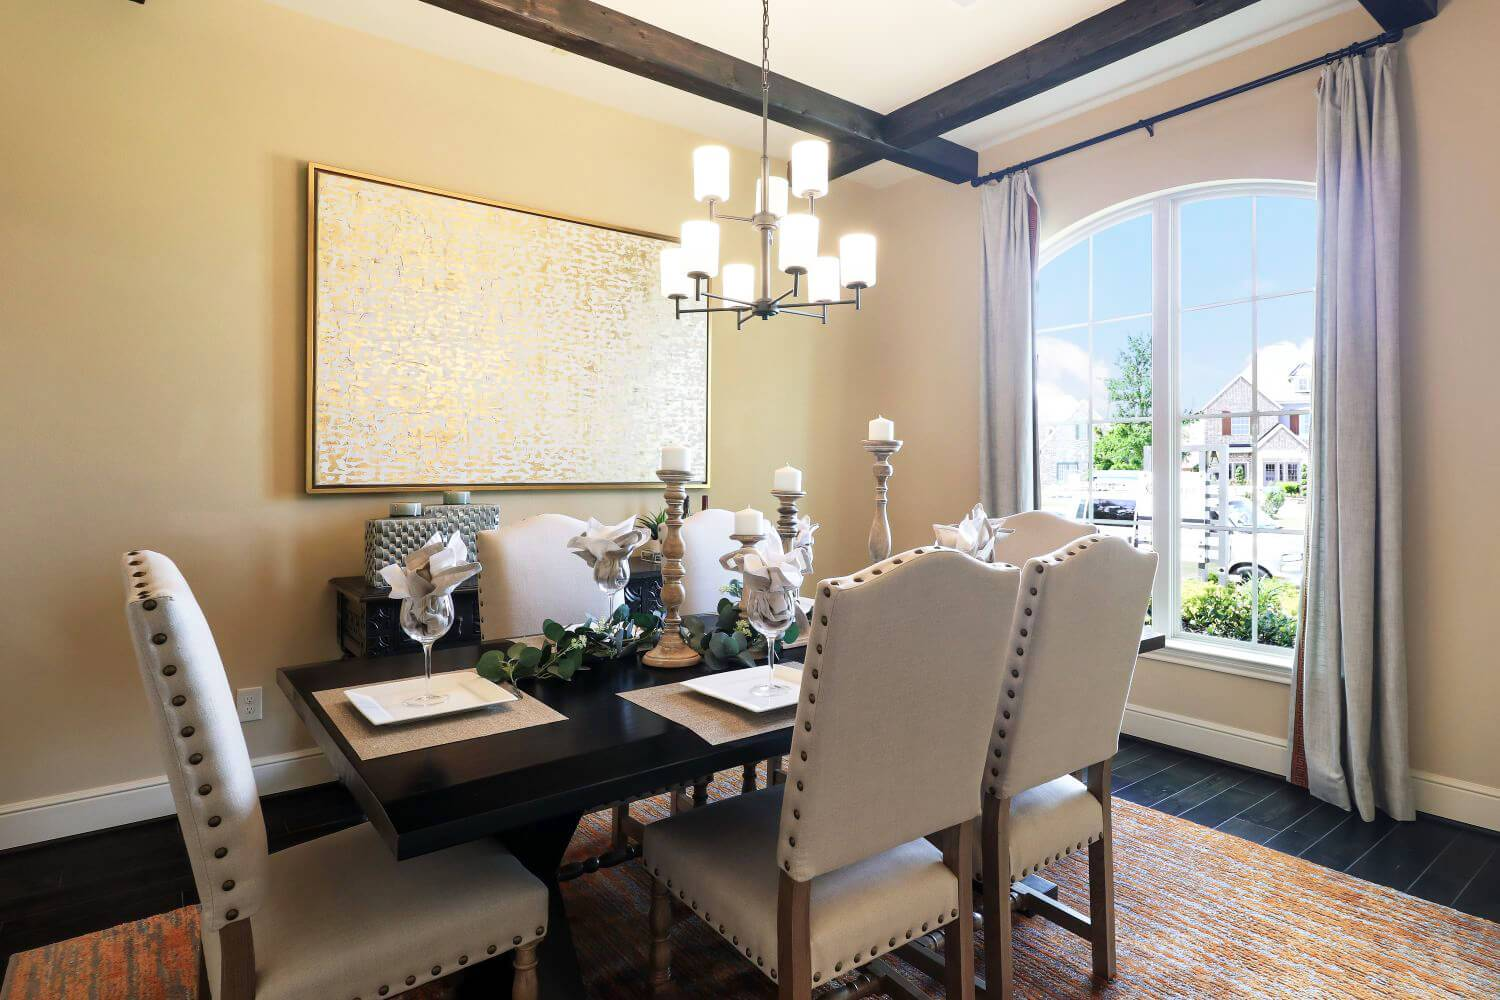 Single Family for Active at Design 7315 18331 Longmanhill Dr Richmond, Texas 77407 United States